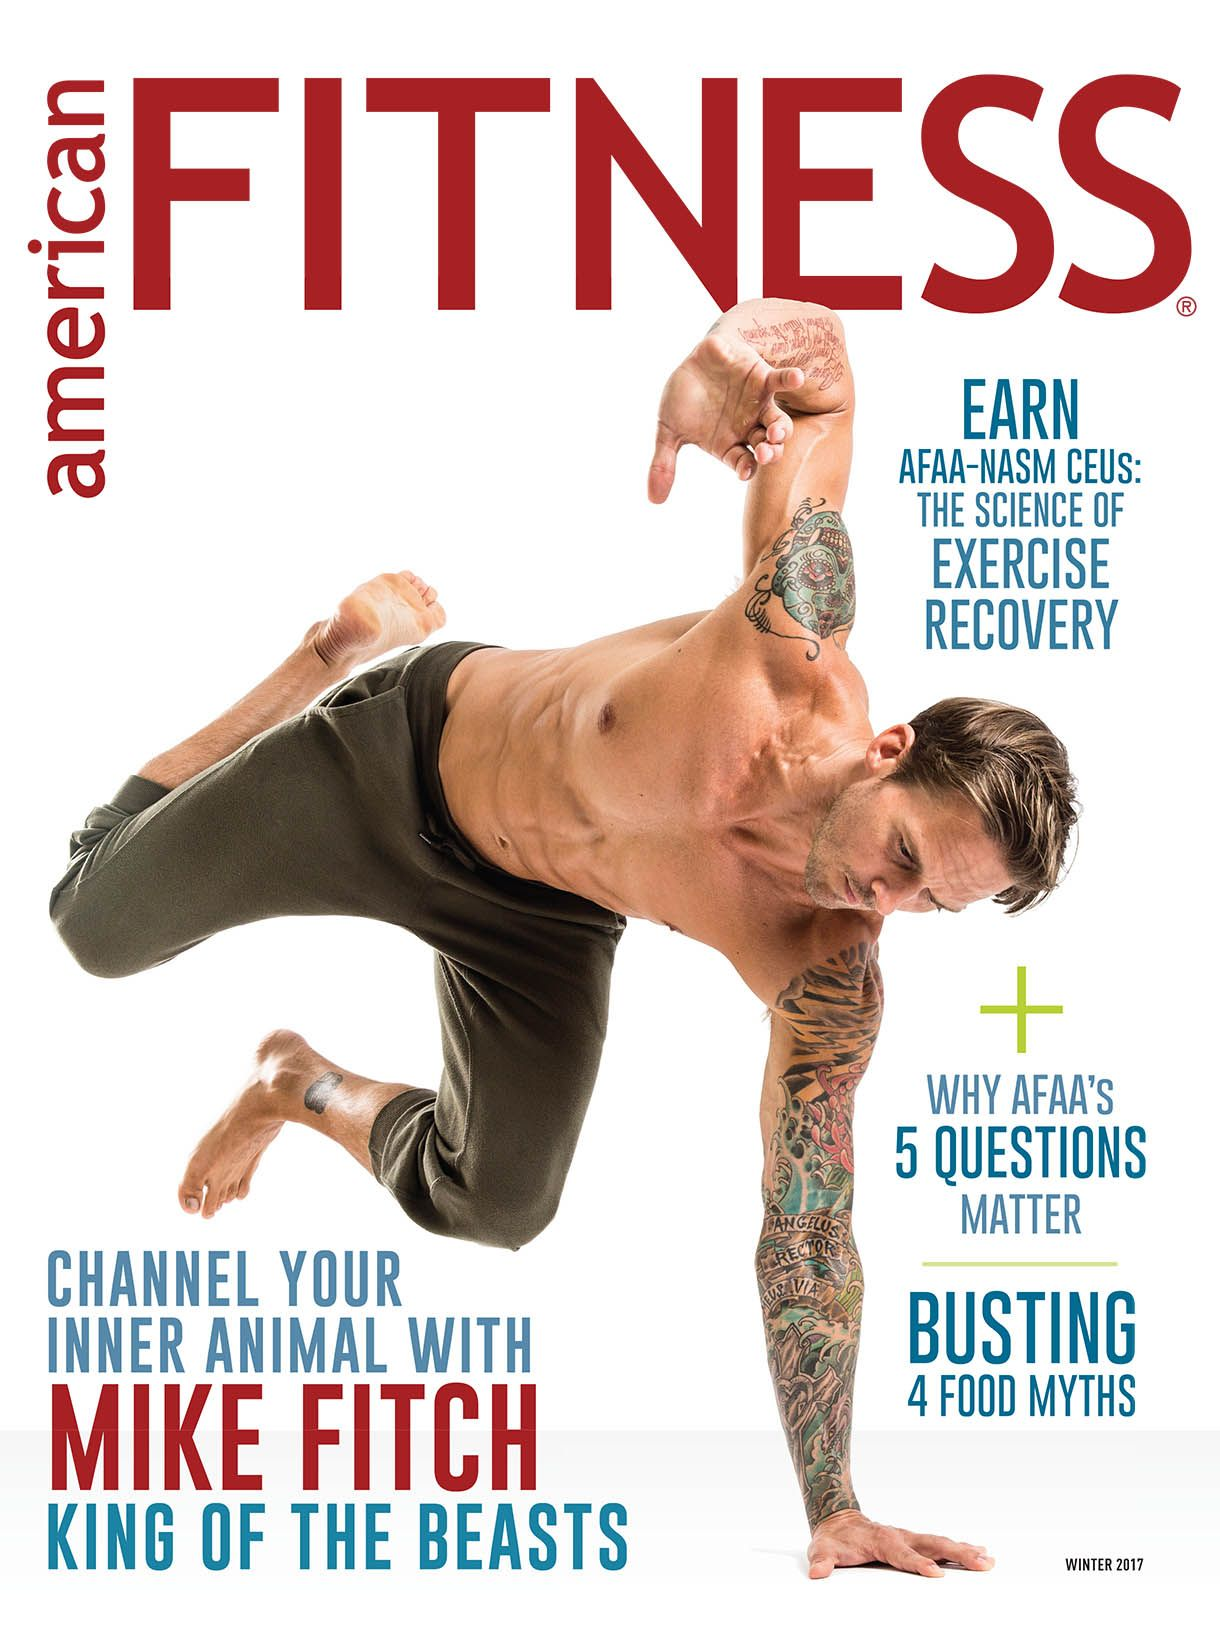 Mike Fitch (With images) Fitness magazine, Food myths